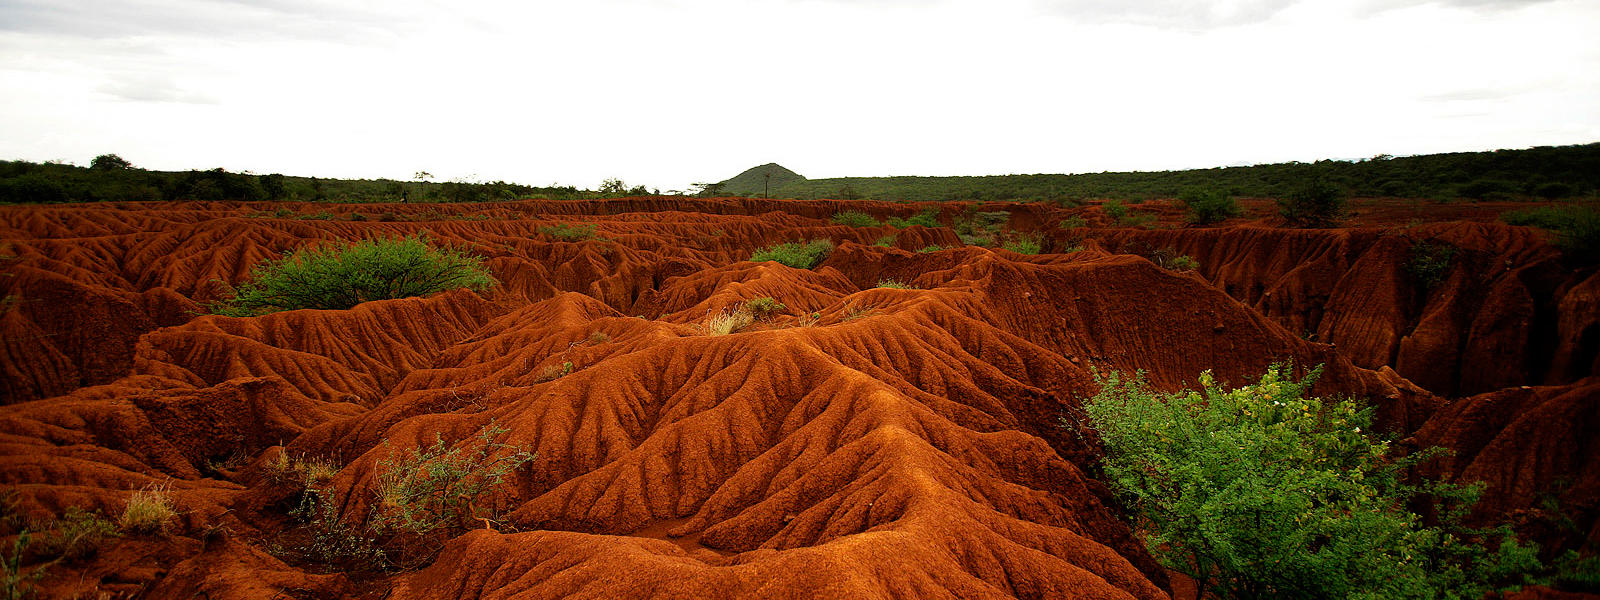 Image results for soil erosion in the past